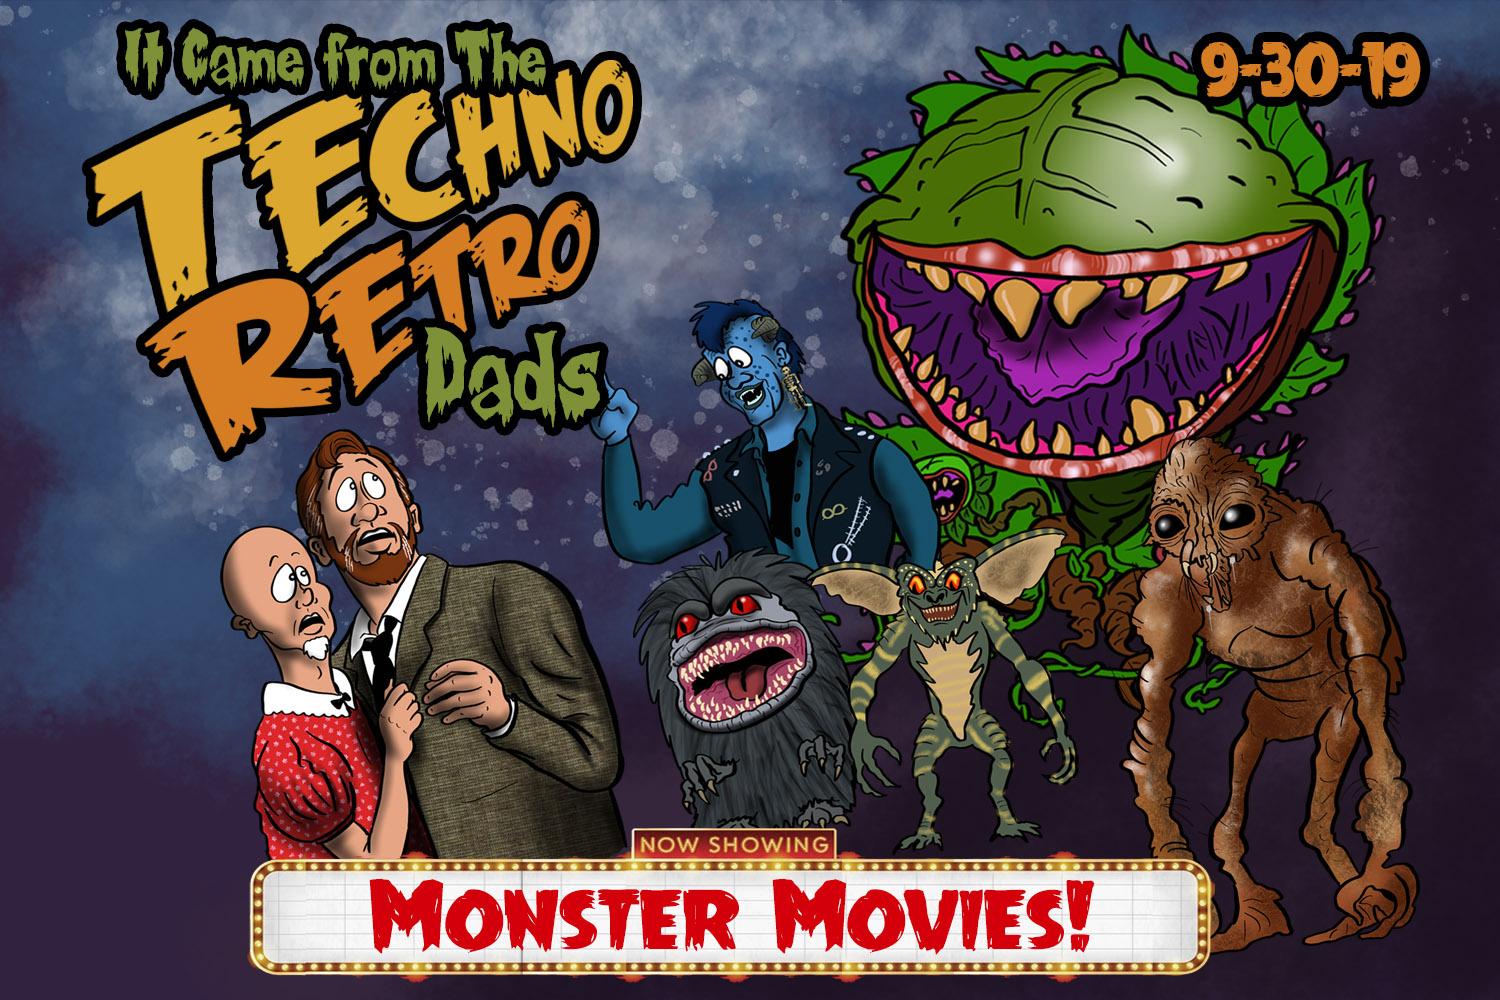 TechnoRetro Dads 80s Monster Movies